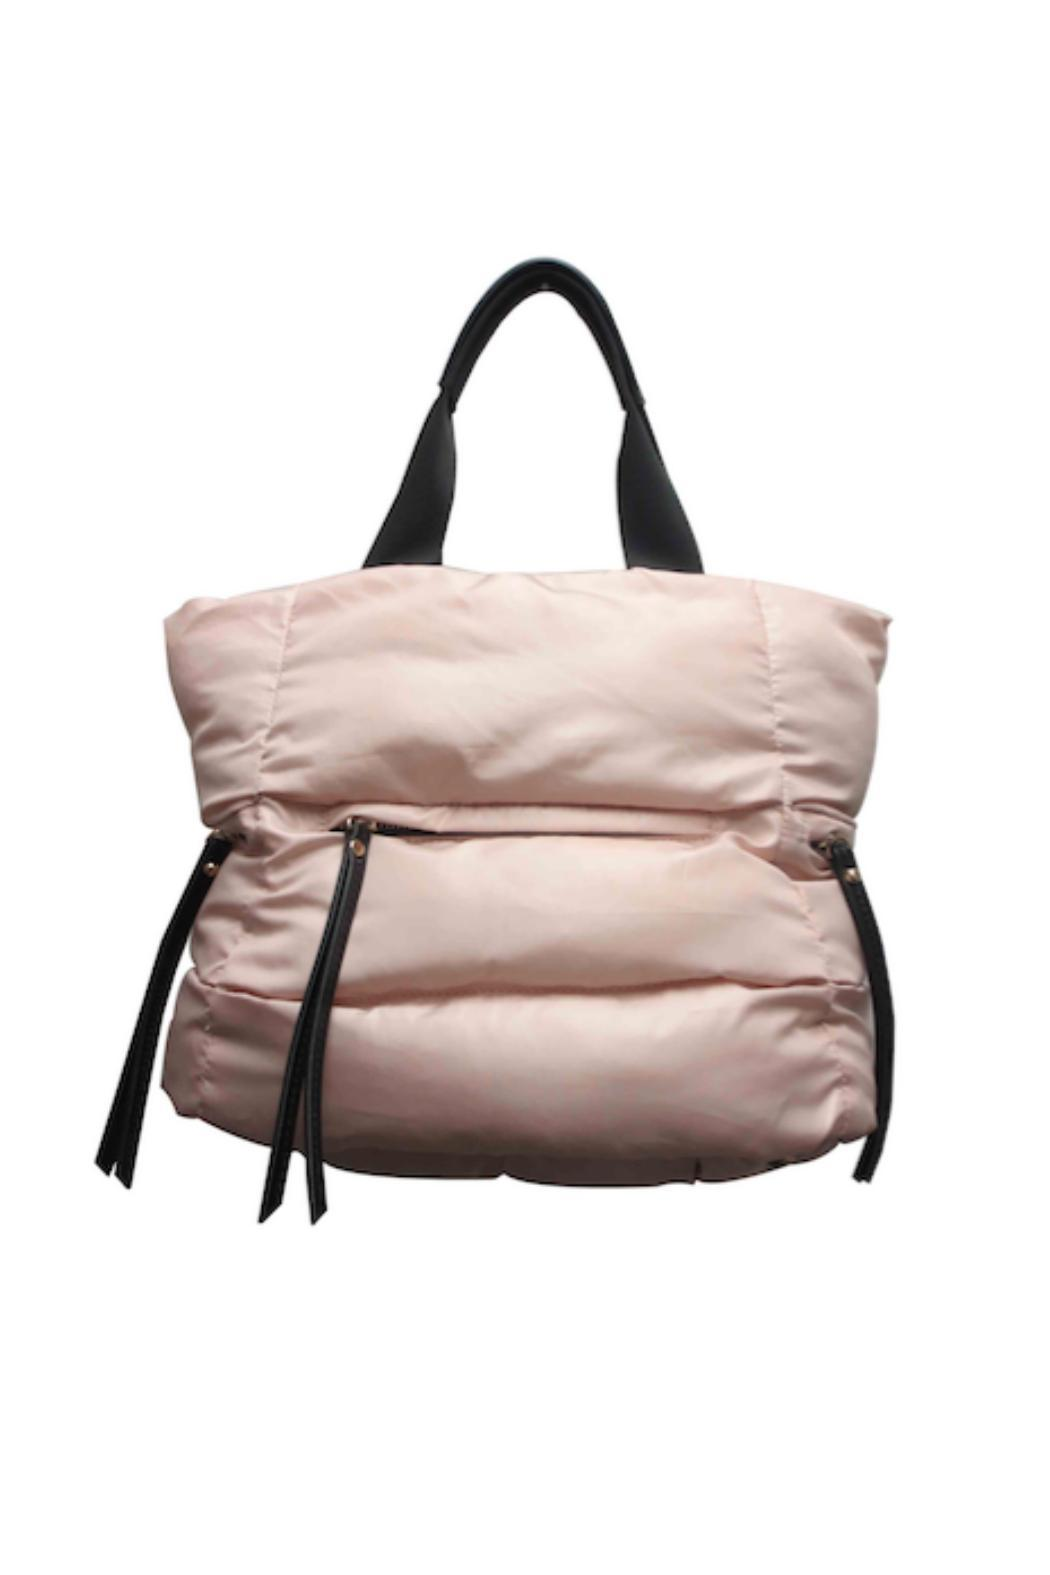 30aa342d3cb Sondra Roberts Quilted Nylon Tote From New York By Let S Bag It